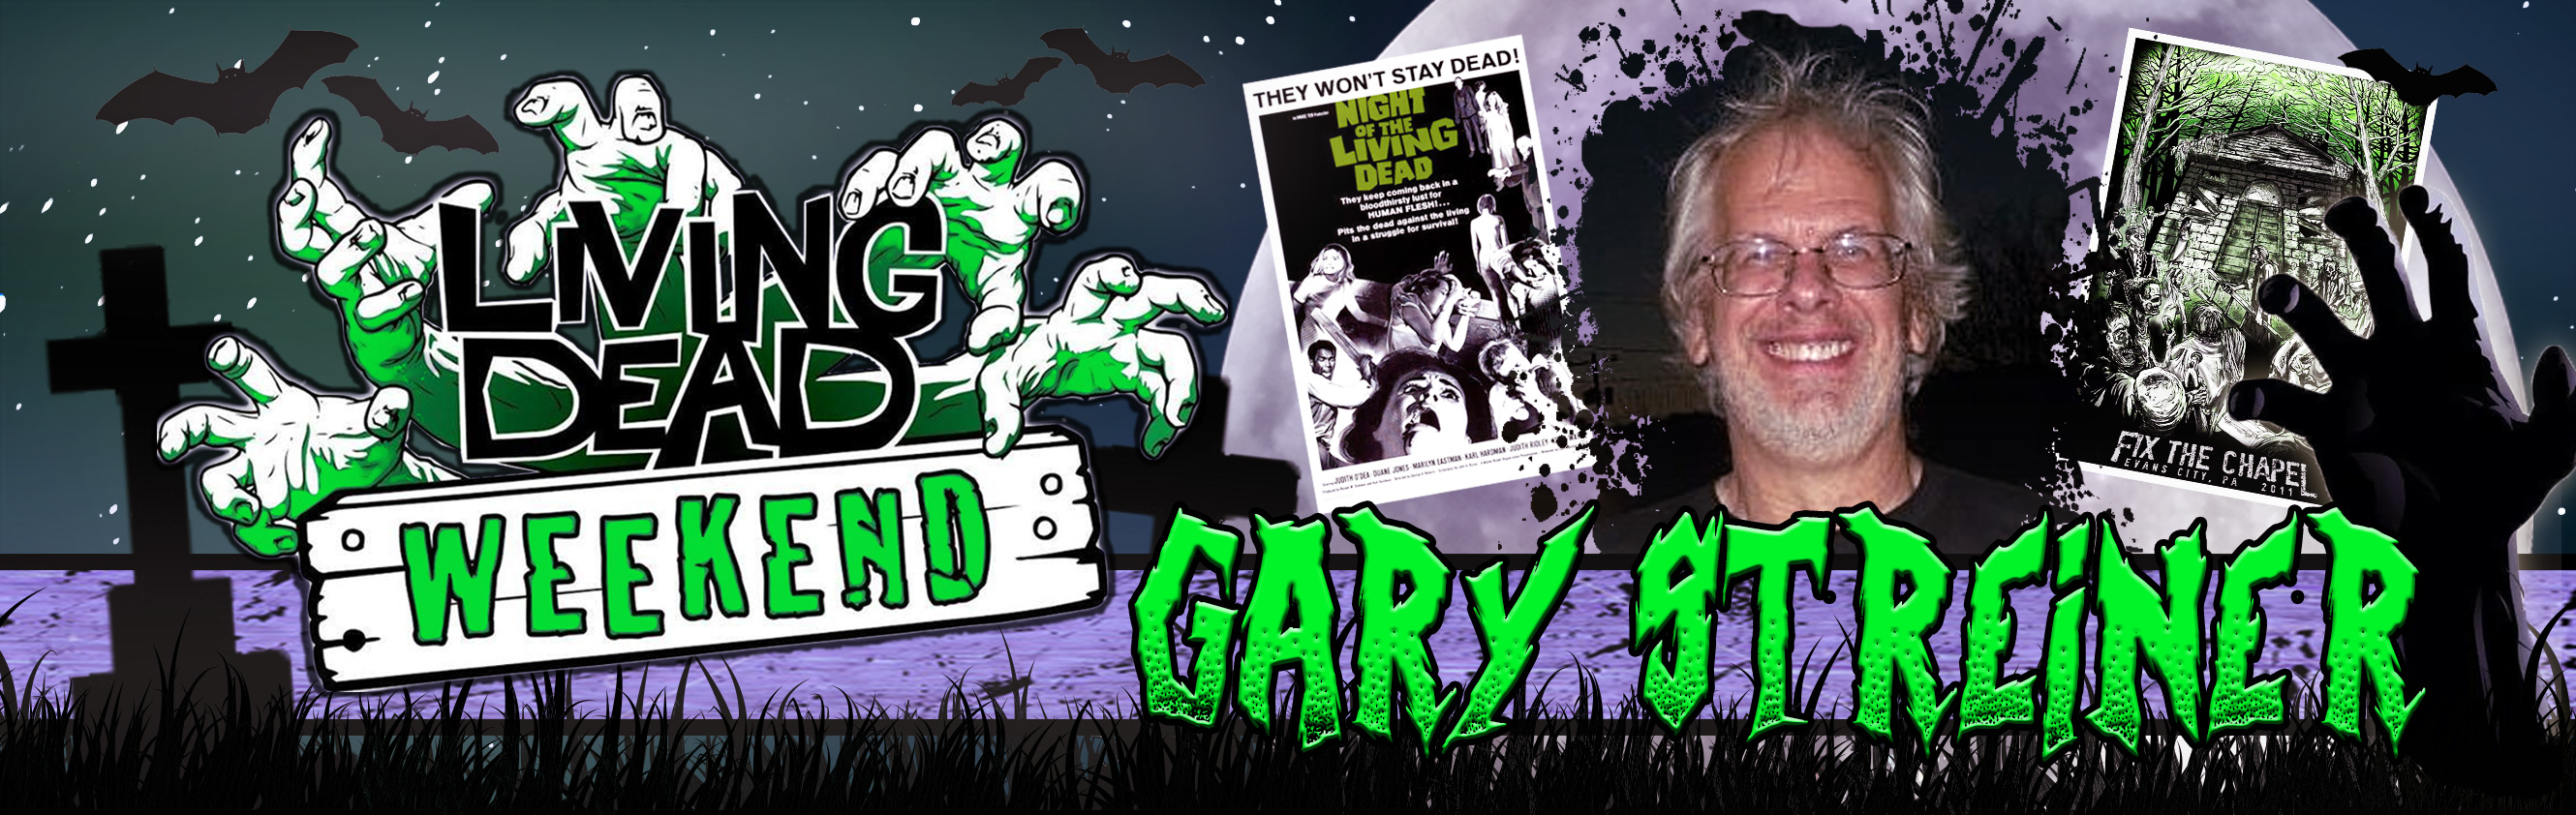 Night of the Living Dead's Gary Streiner will be a guest at the Living Dead Weekend 2016